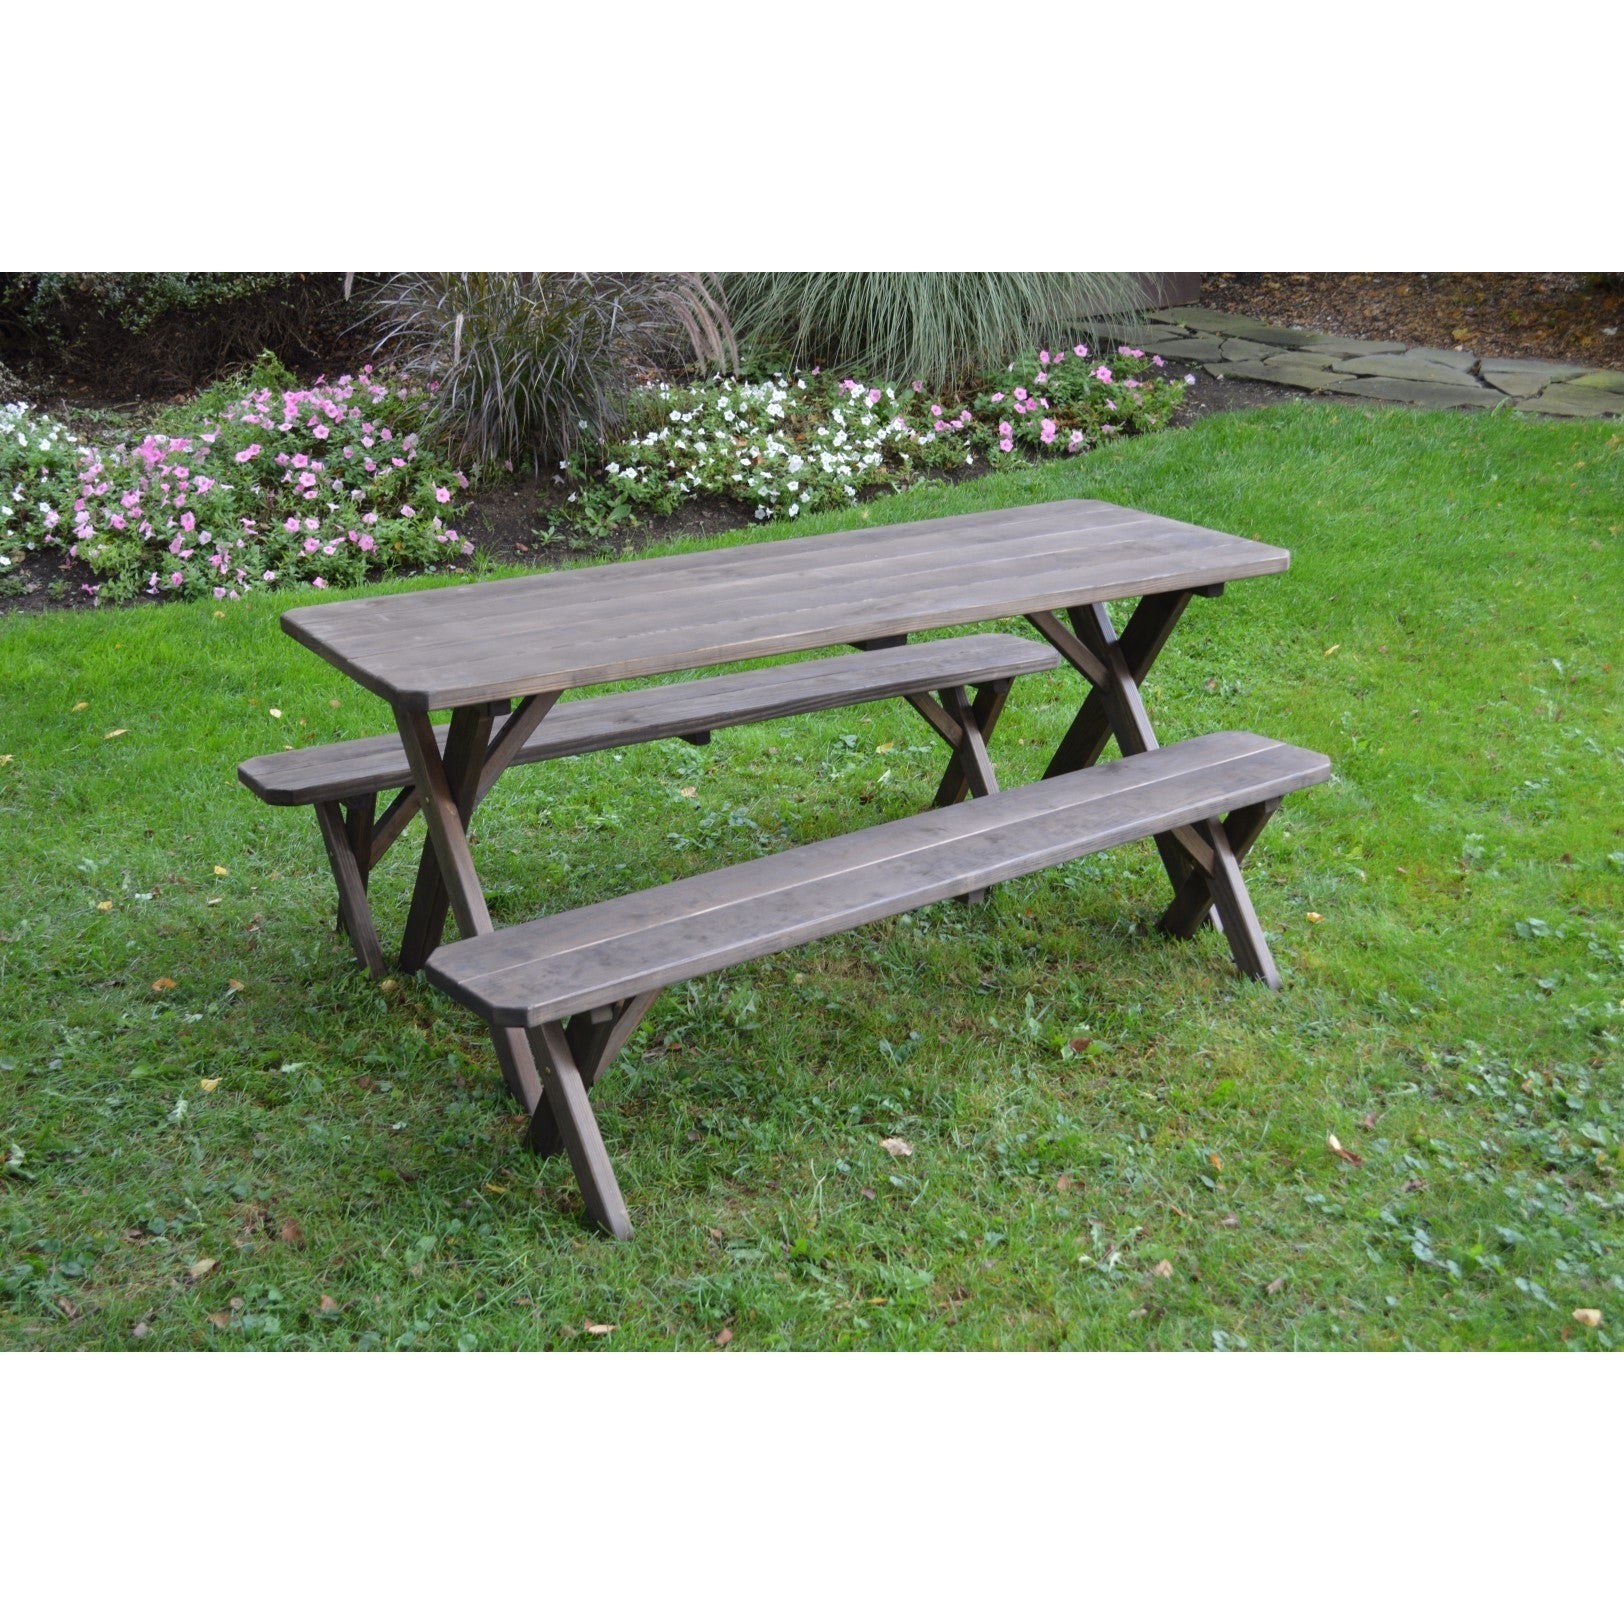 Pressure Treated Pine Cross Leg Picnic Table W Detached Benches Walnut Stain 4 5 6 Or 8ft